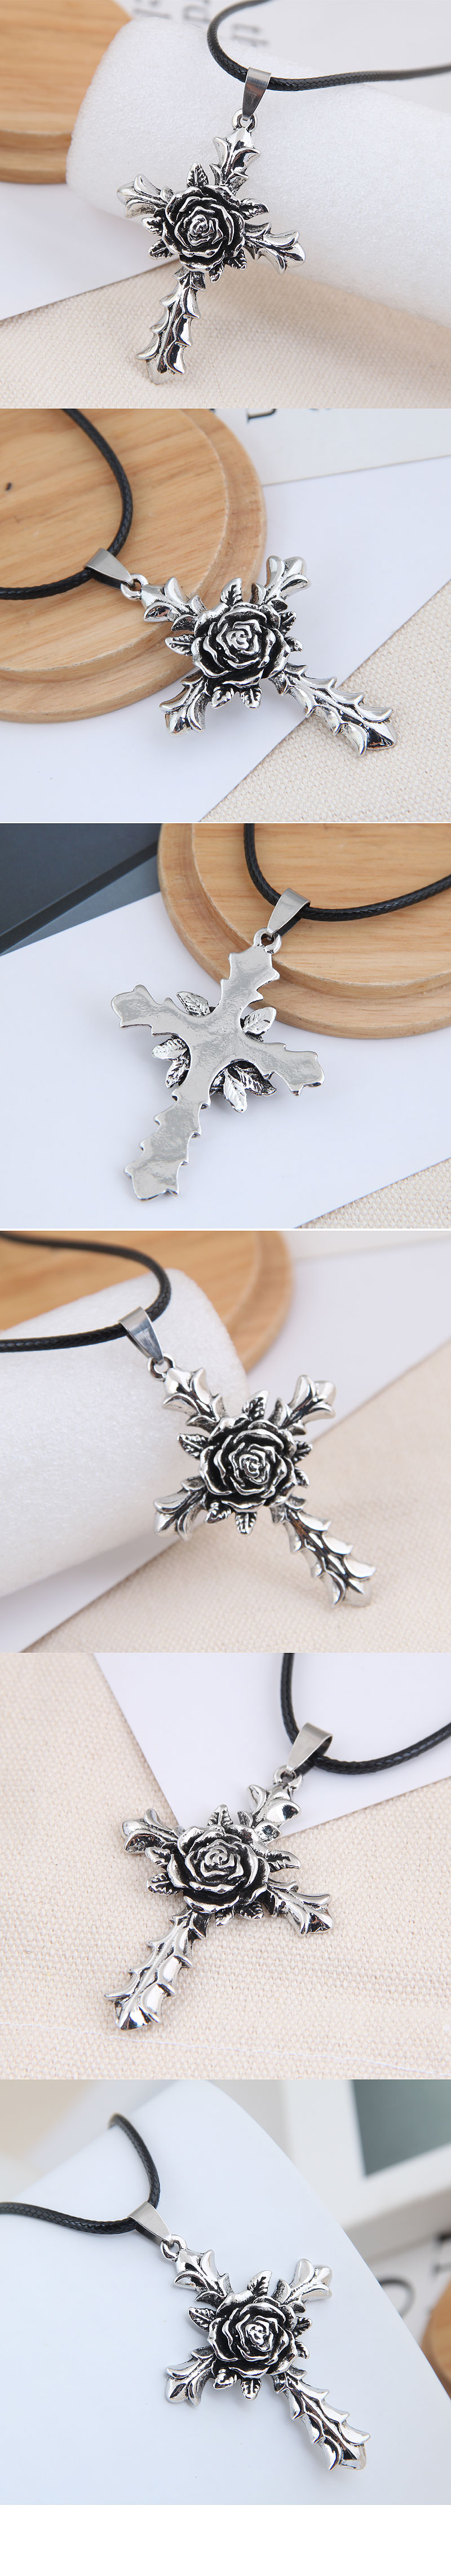 New fashion retro simple cross flower exaggerated alloy necklace NHSC254001